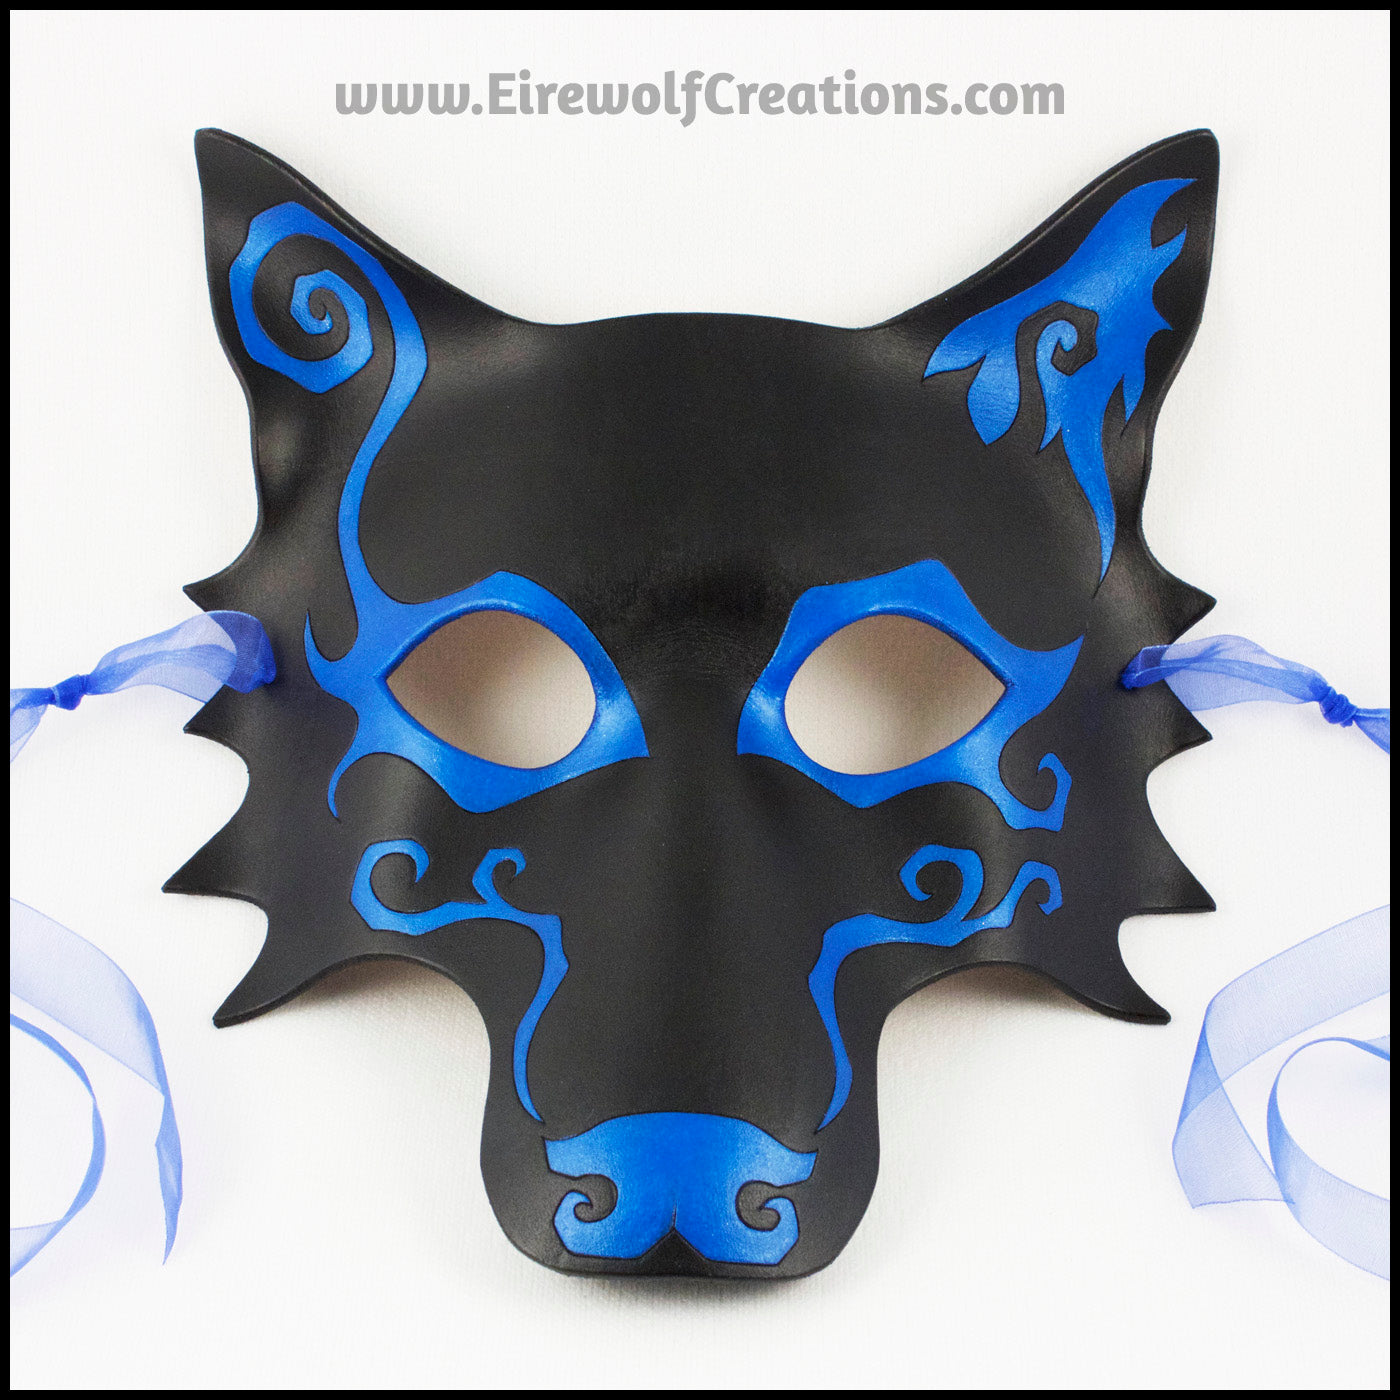 Marvelous Spiral Wolf Handmade Leather Masquerade Mask With Asymmetrical Spiral  Designs, Mardi Gras Or Halloween Costume, Blue And Black